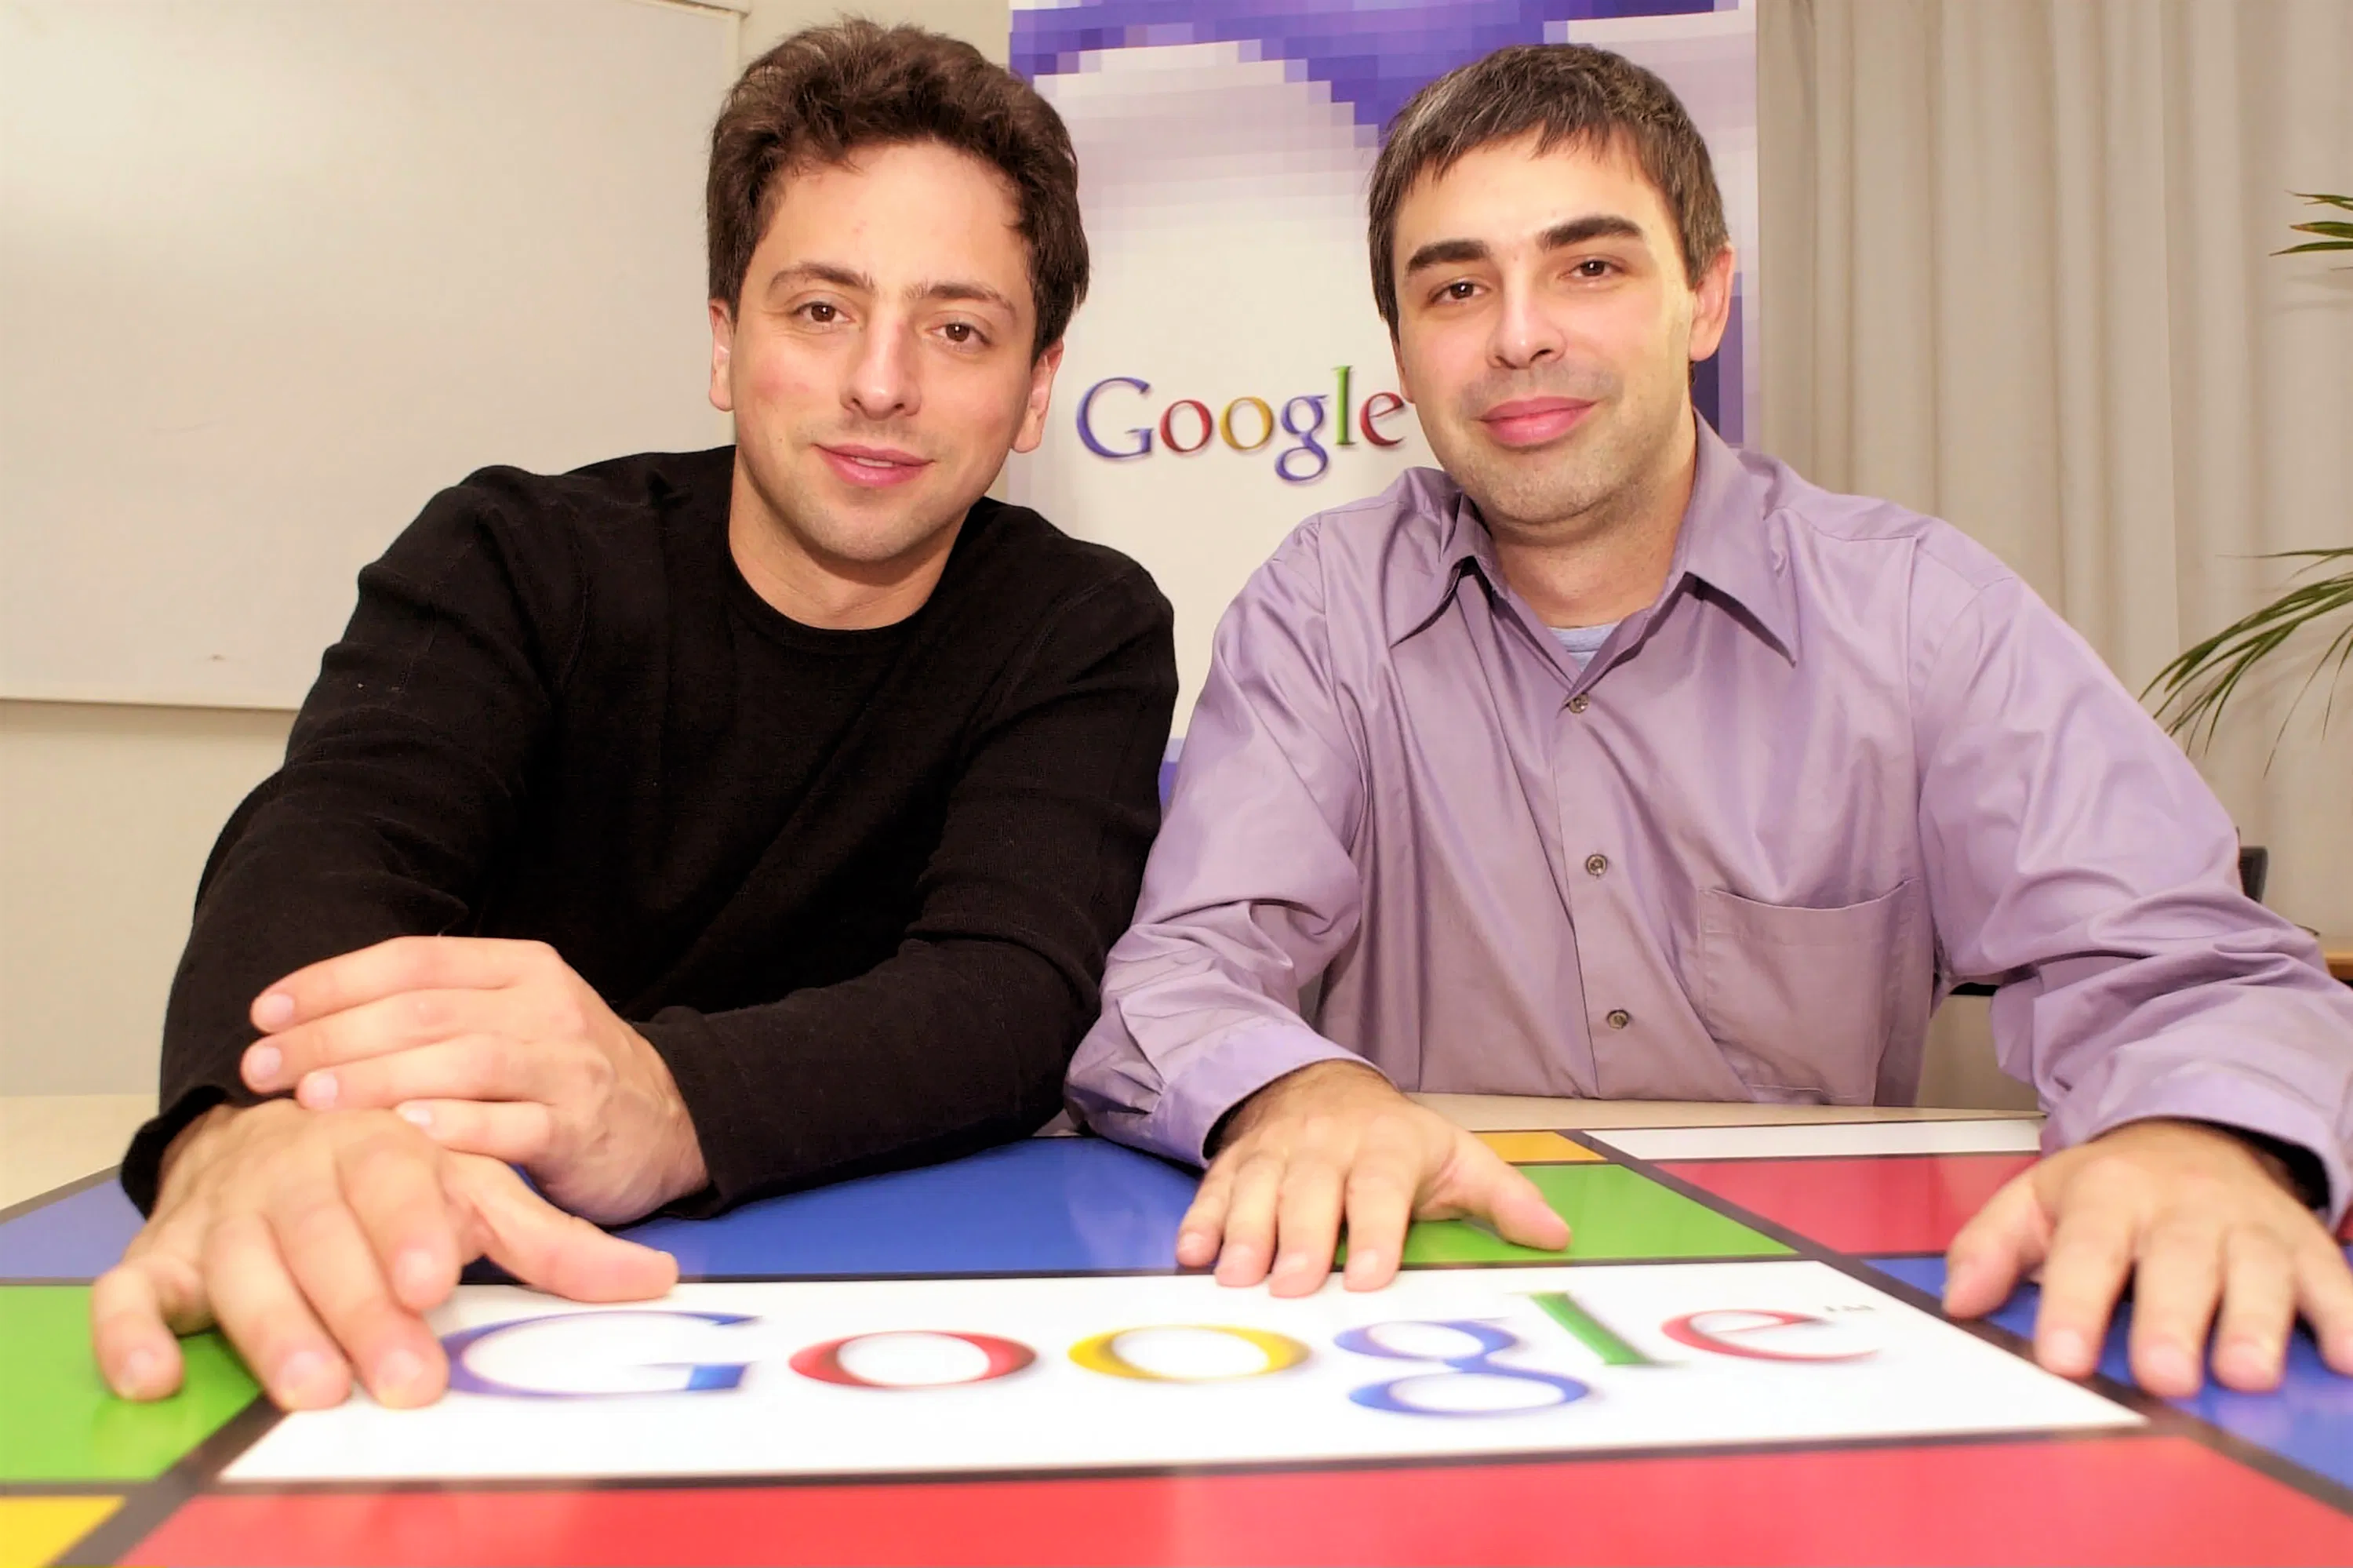 Google's Larry Page and Sergey Brin stepping down from top roles